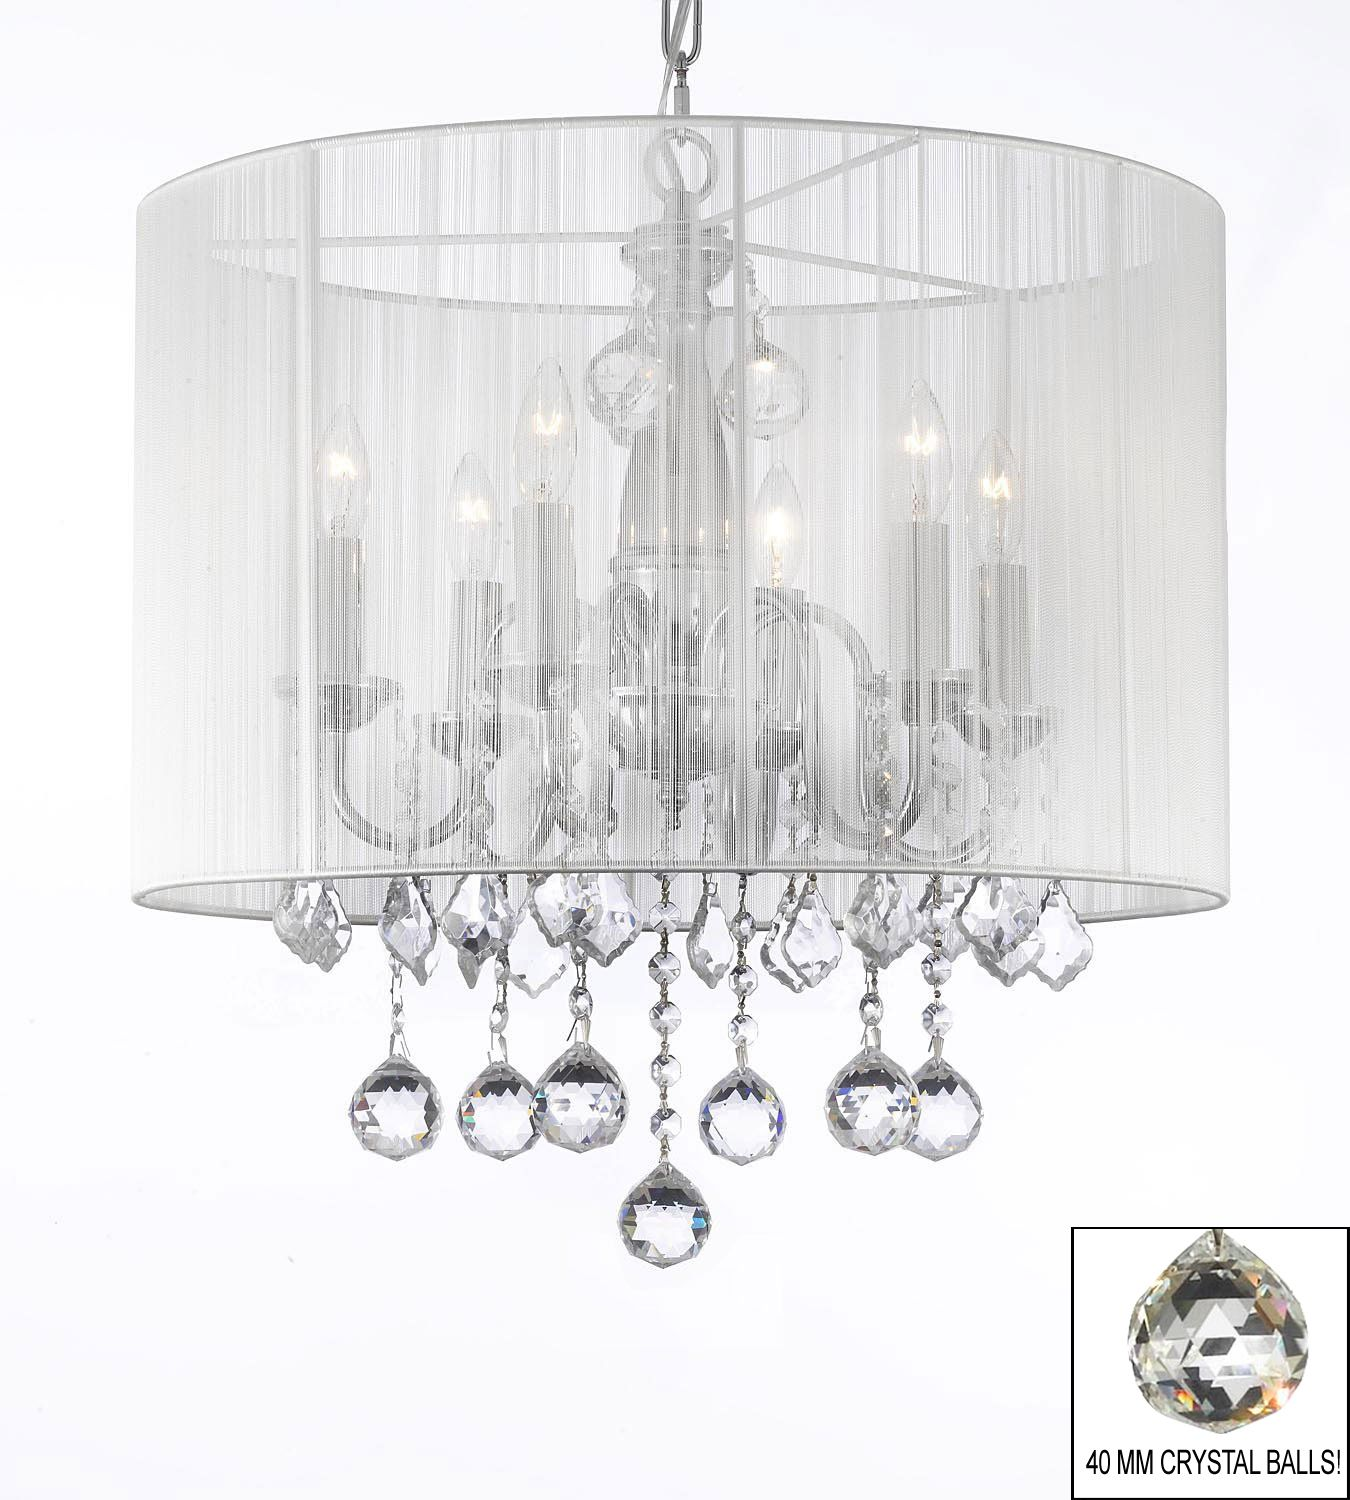 light ceiling chandeliers rectangular kitchen full fixture of large glass dining lighting led keyword to foyer from relevance sphere crystals modern size chandelier by funky real black table design small entryway room pink ideas crystal big hang decorative